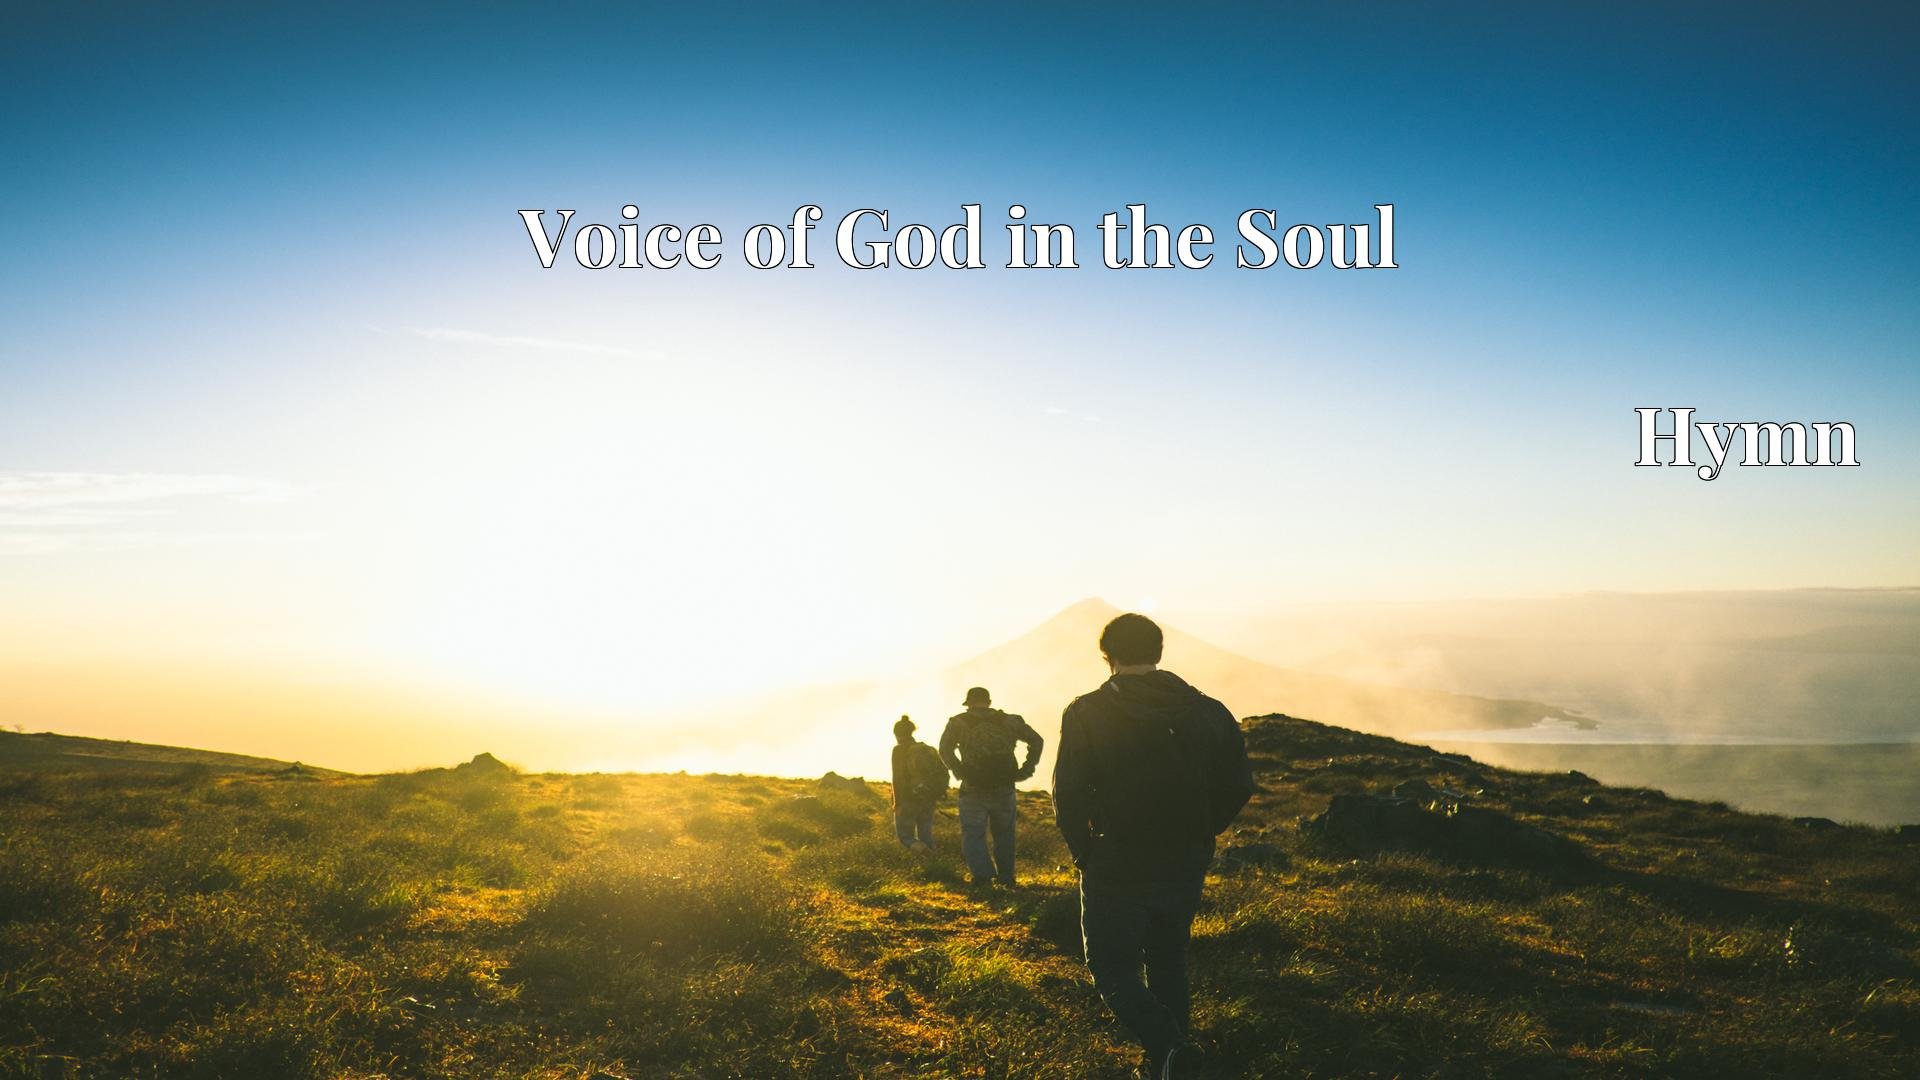 Voice of God in the Soul Hymn